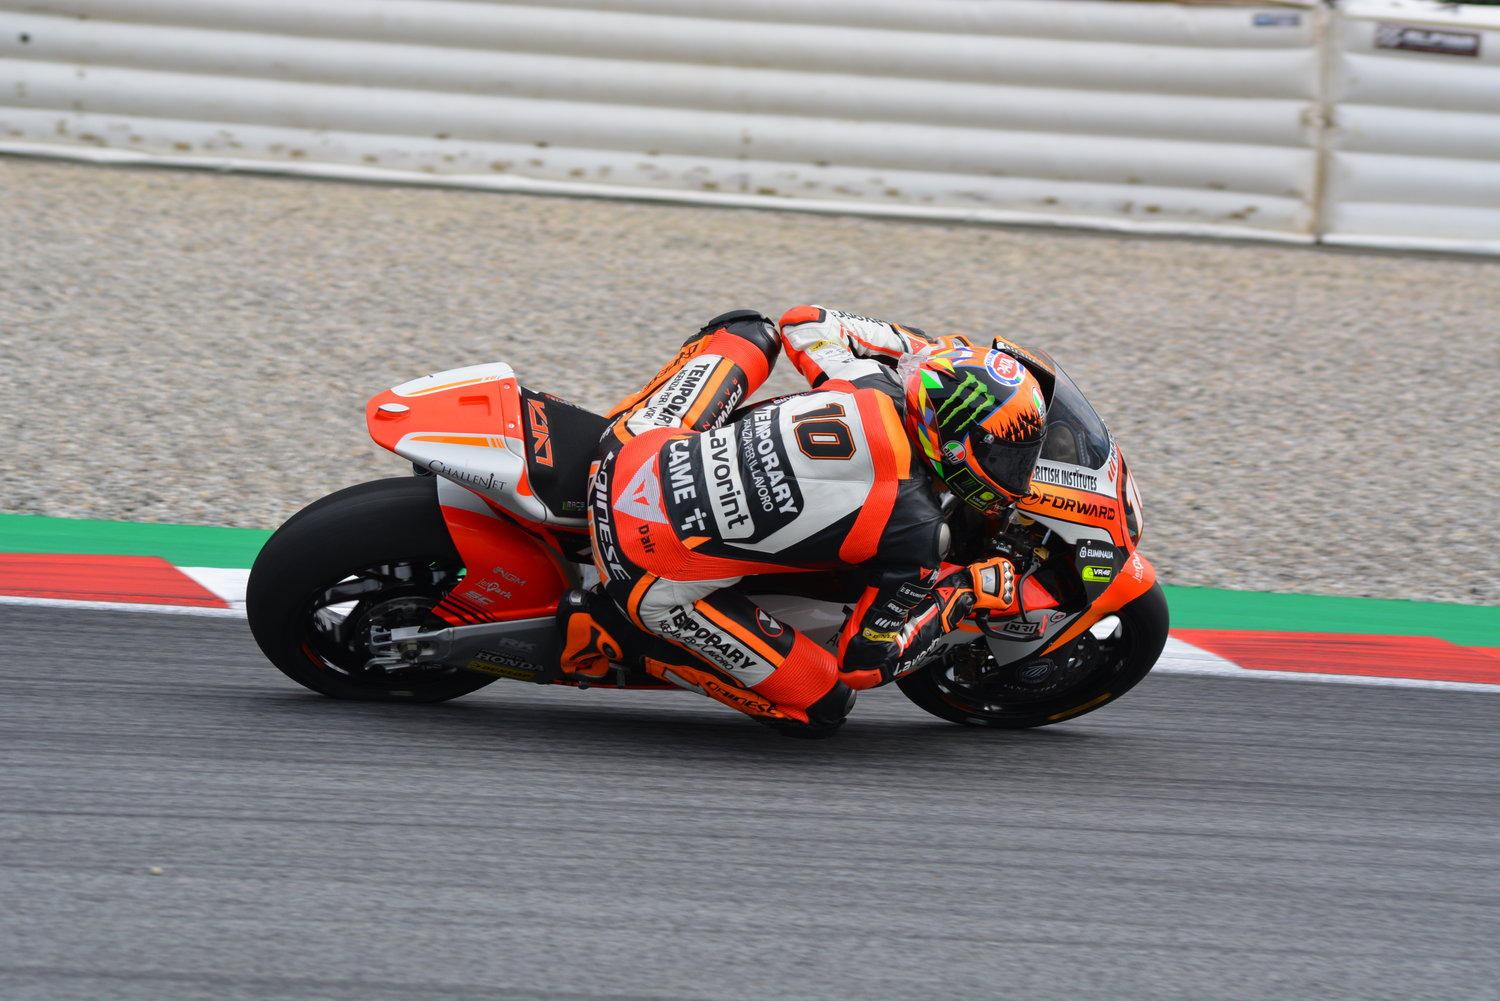 Marini and Baldassarri with missing luck in Spielberg